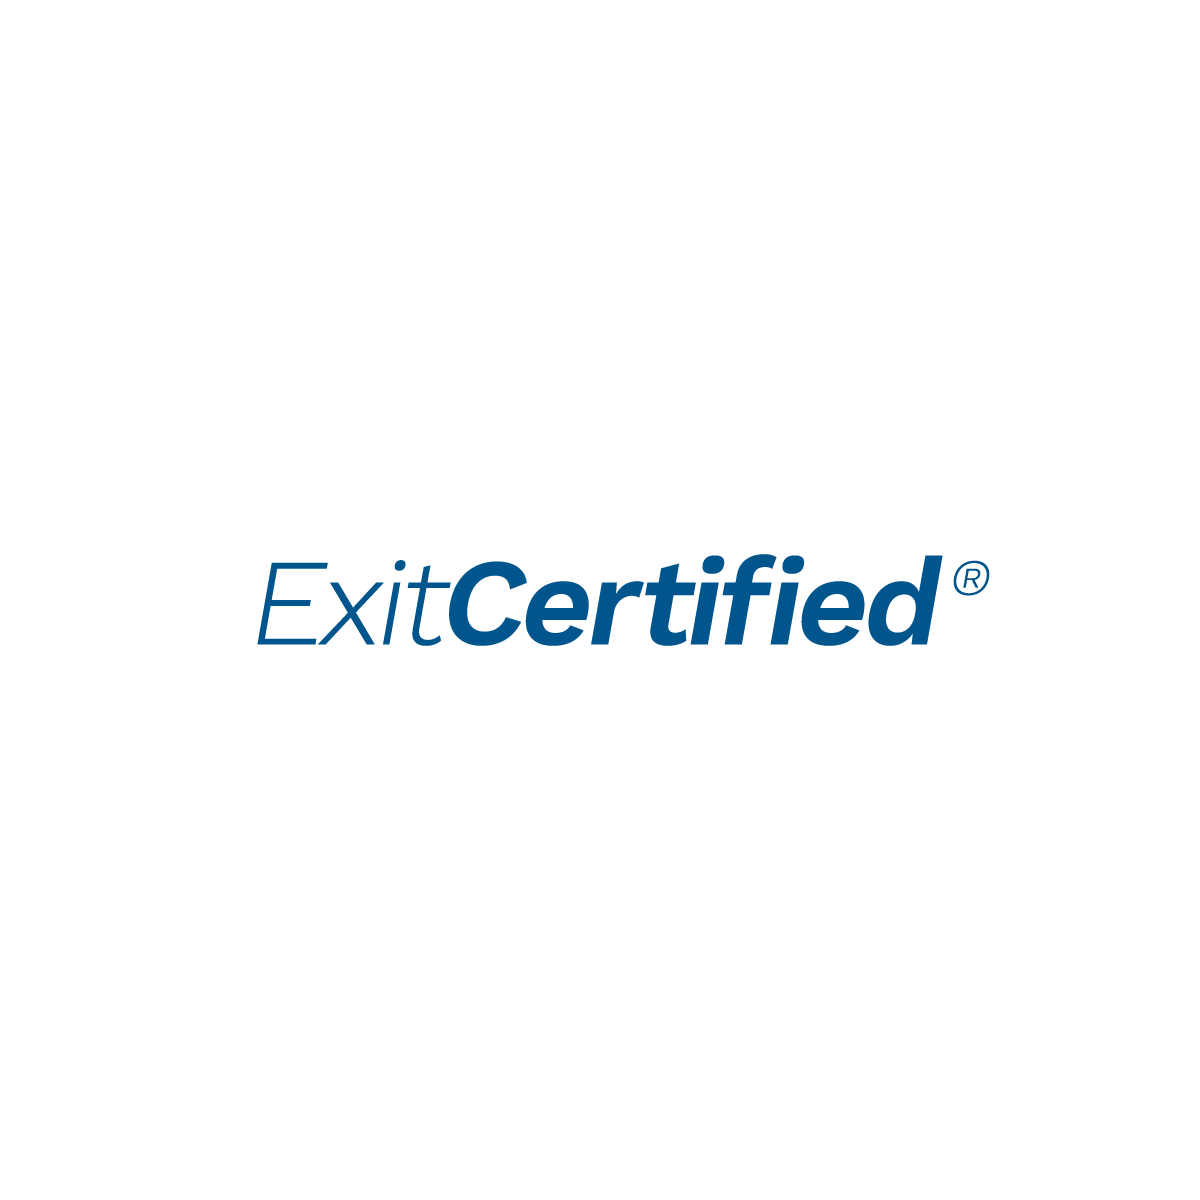 Your Trusted Provider For Certified It Training Exitcertified